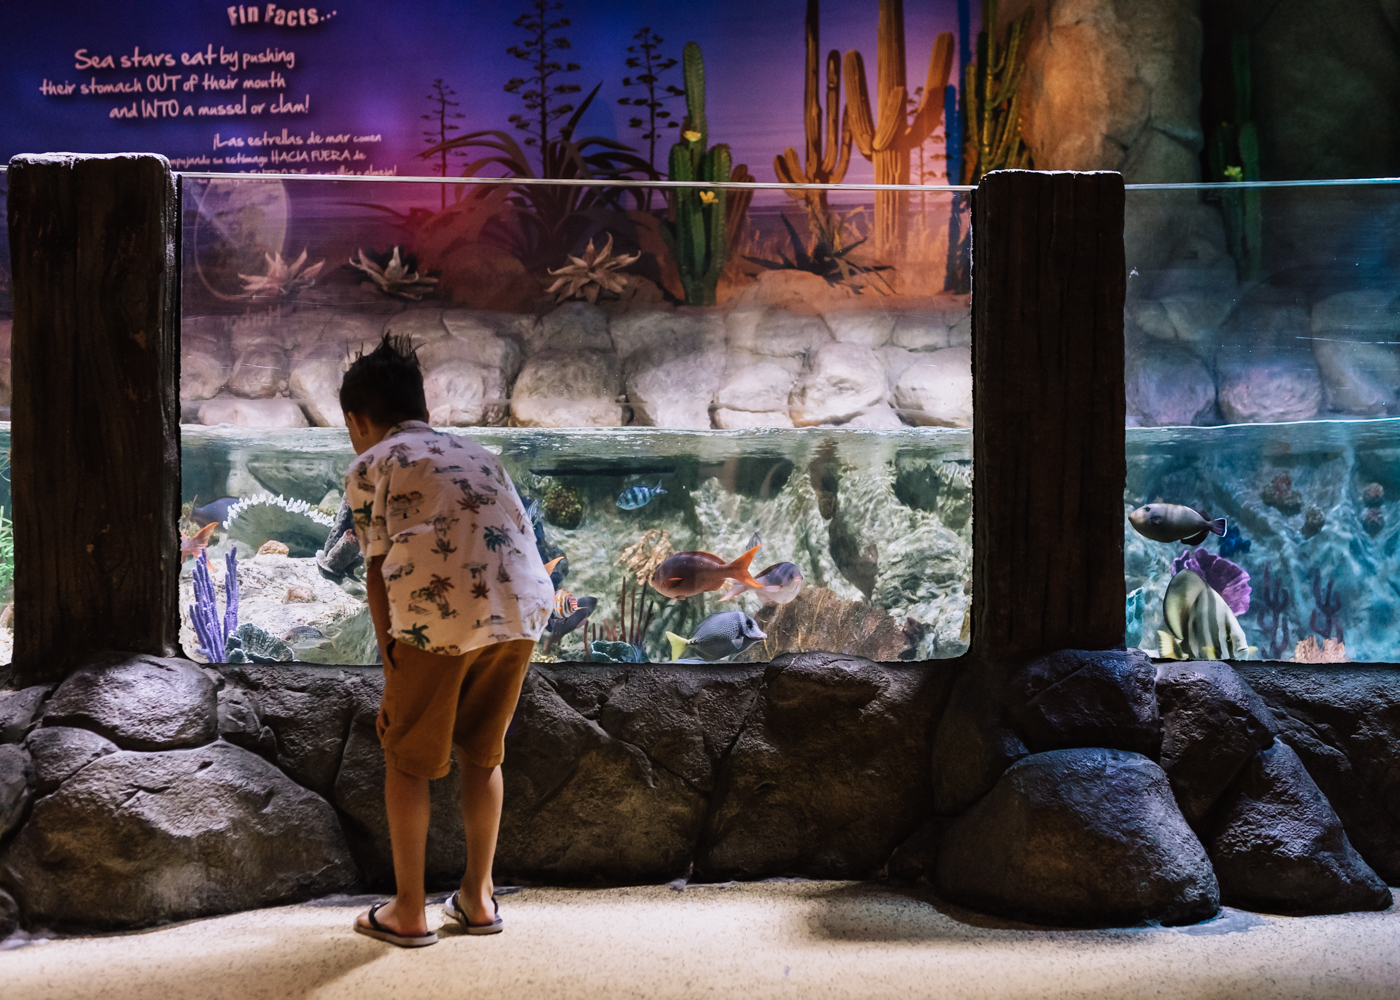 checking out the fish tanks at the SEA LIFE Aquarium Arizona | thelovedesignedlife.com #sealifeaquariumarizona #summerfun #funwithkids